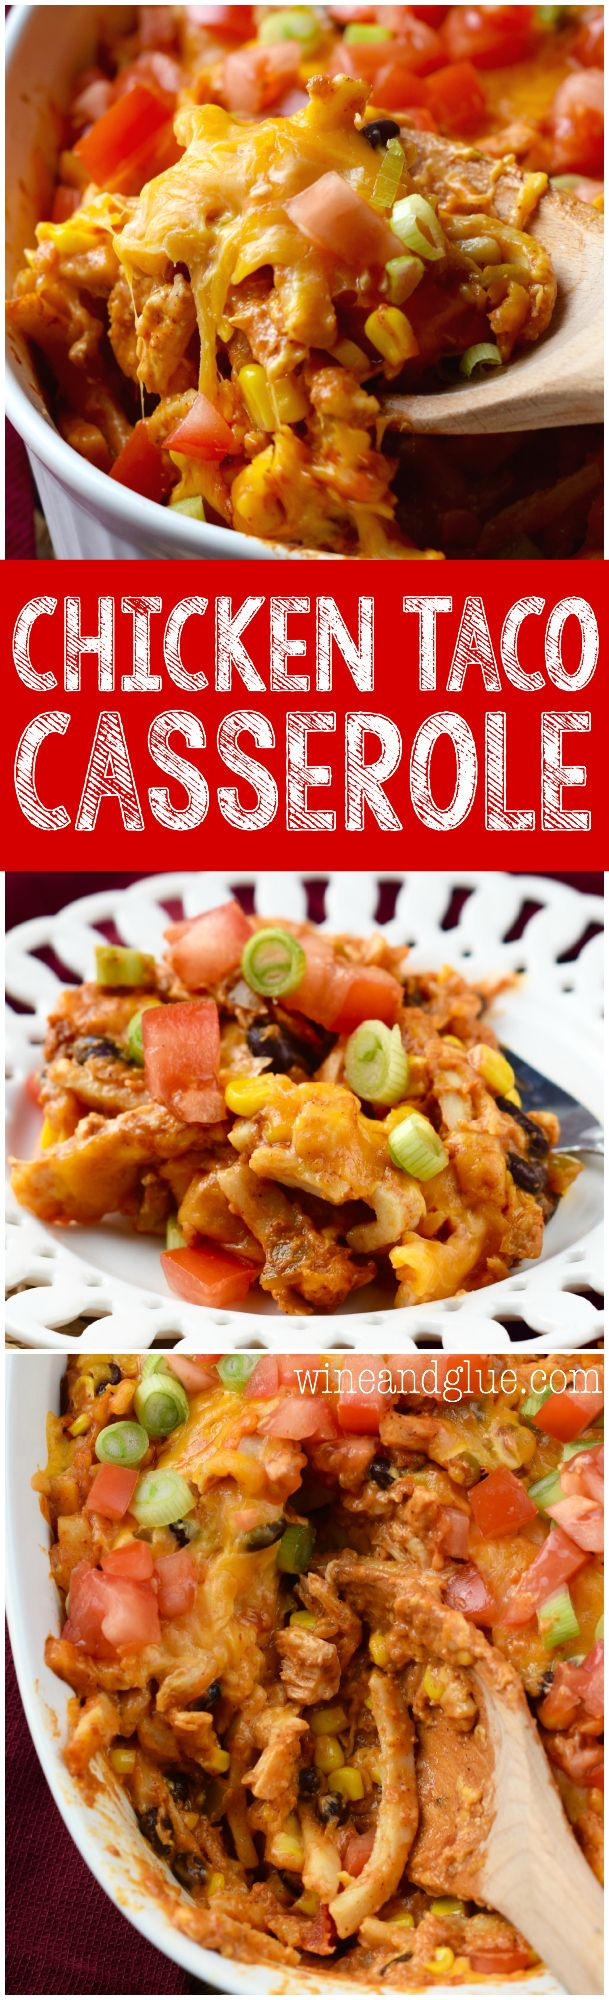 This Chicken Taco Casserole is comfort food at it's finest! Easy to make, packed with flavor, and totally delicious!